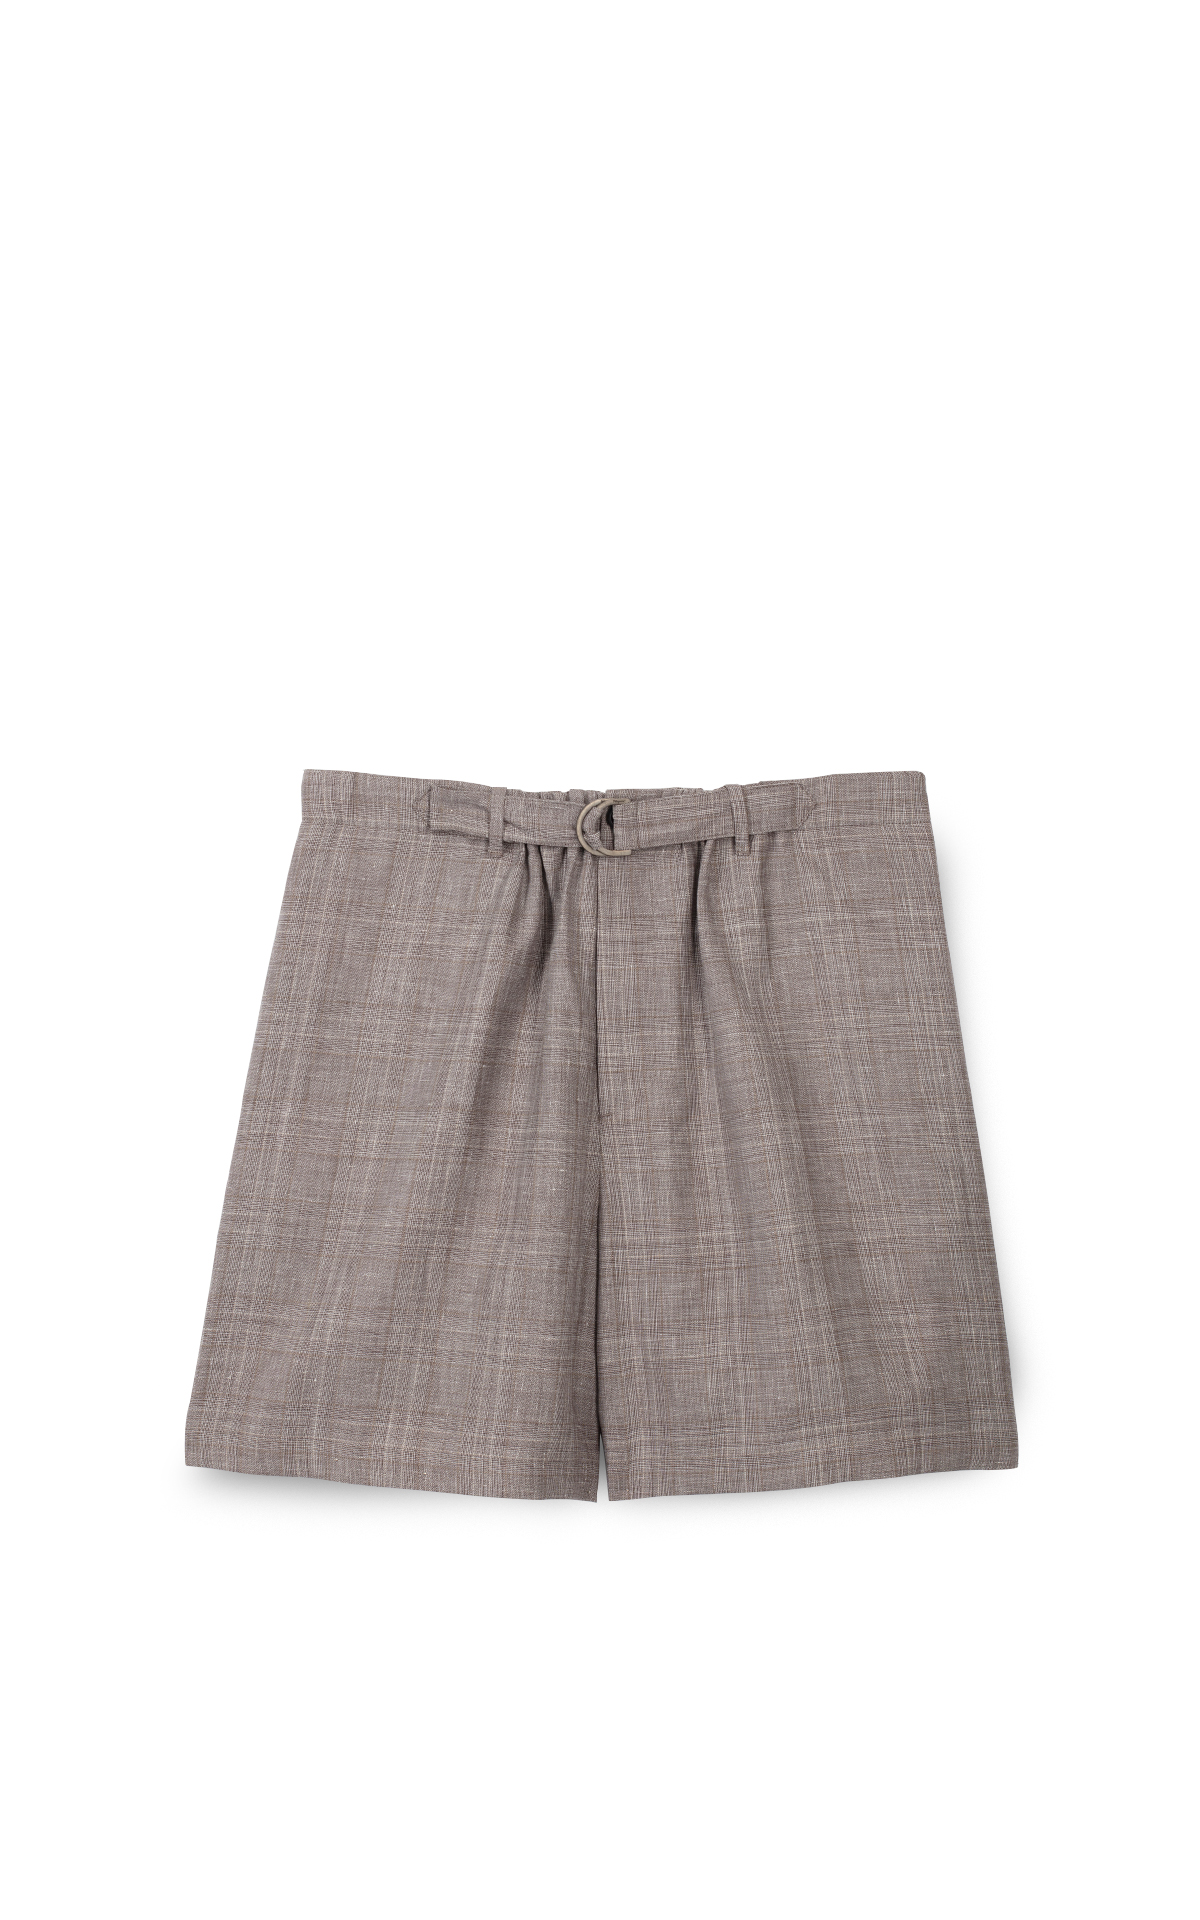 Salvatore Ferragamo Men's shorts*